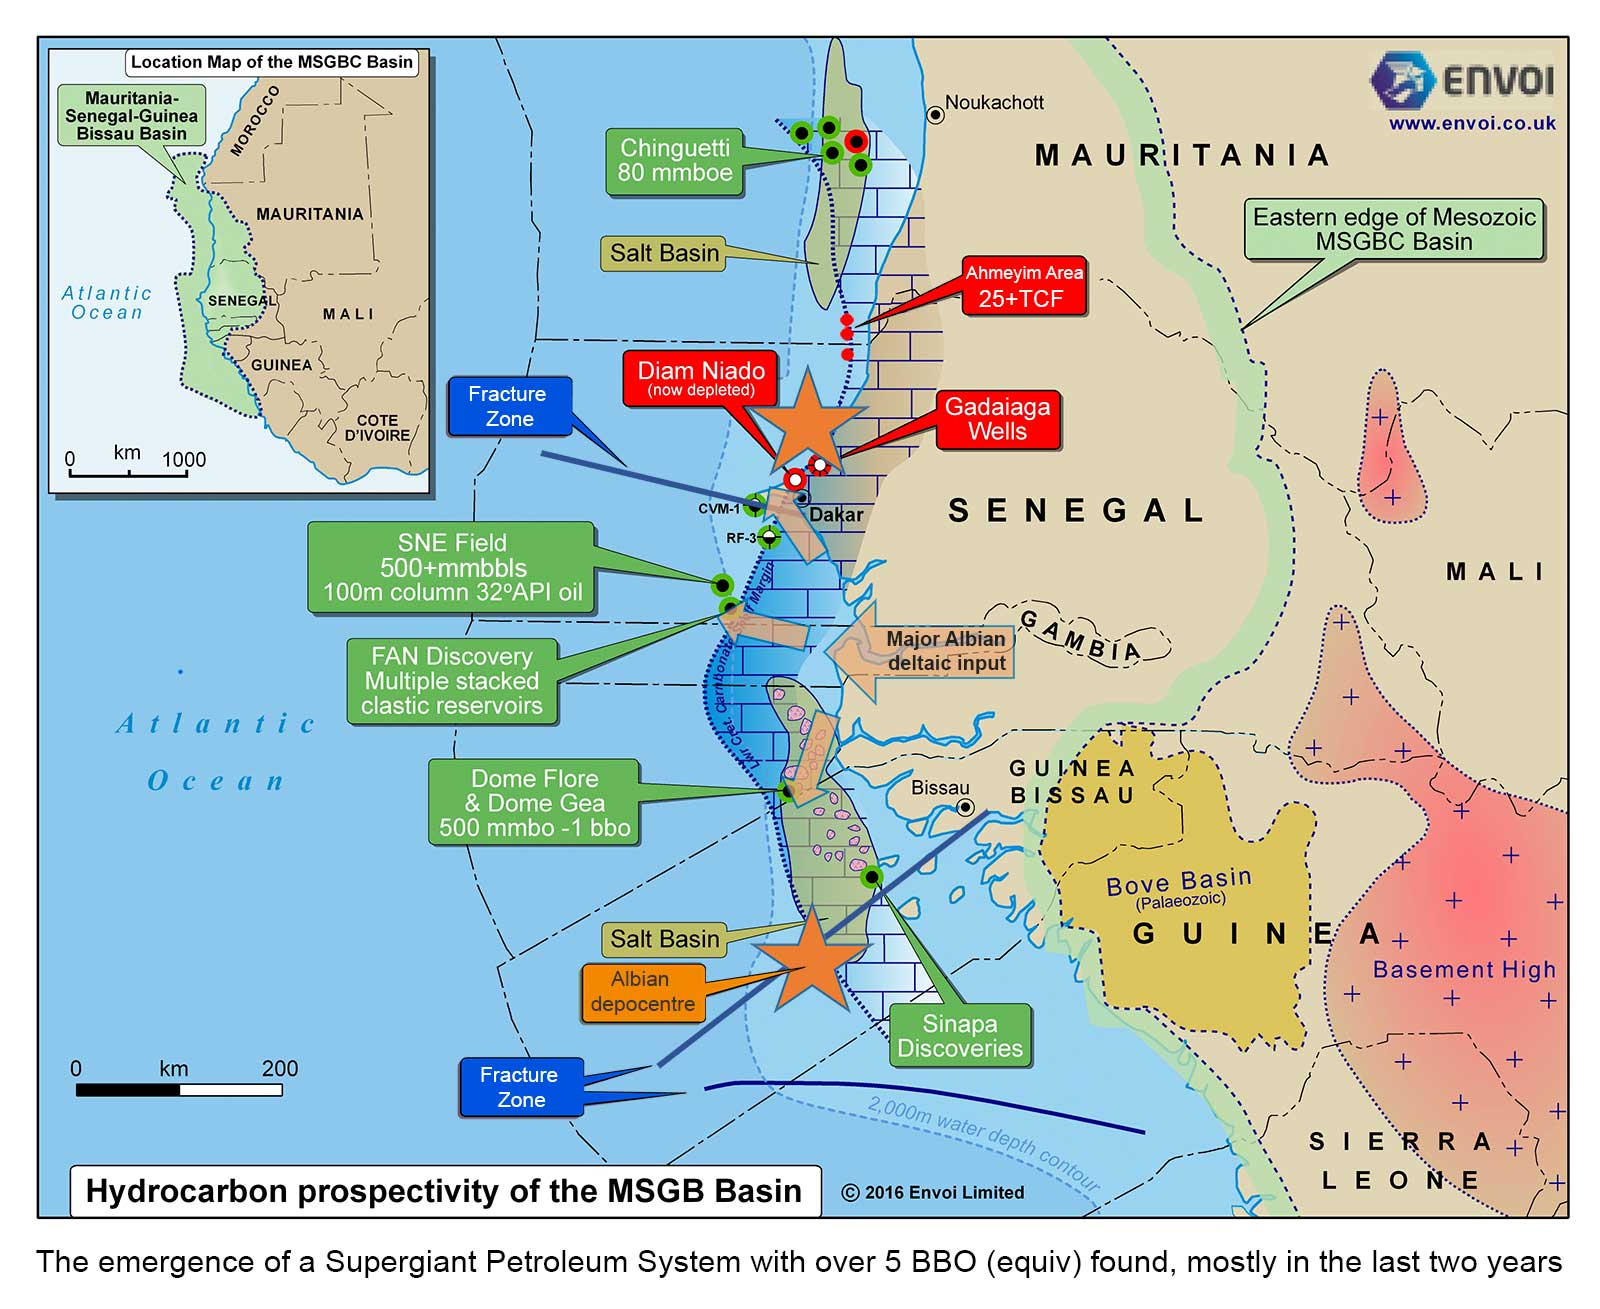 MSGB-Basin(MGG-Version)14-9-17.jpg